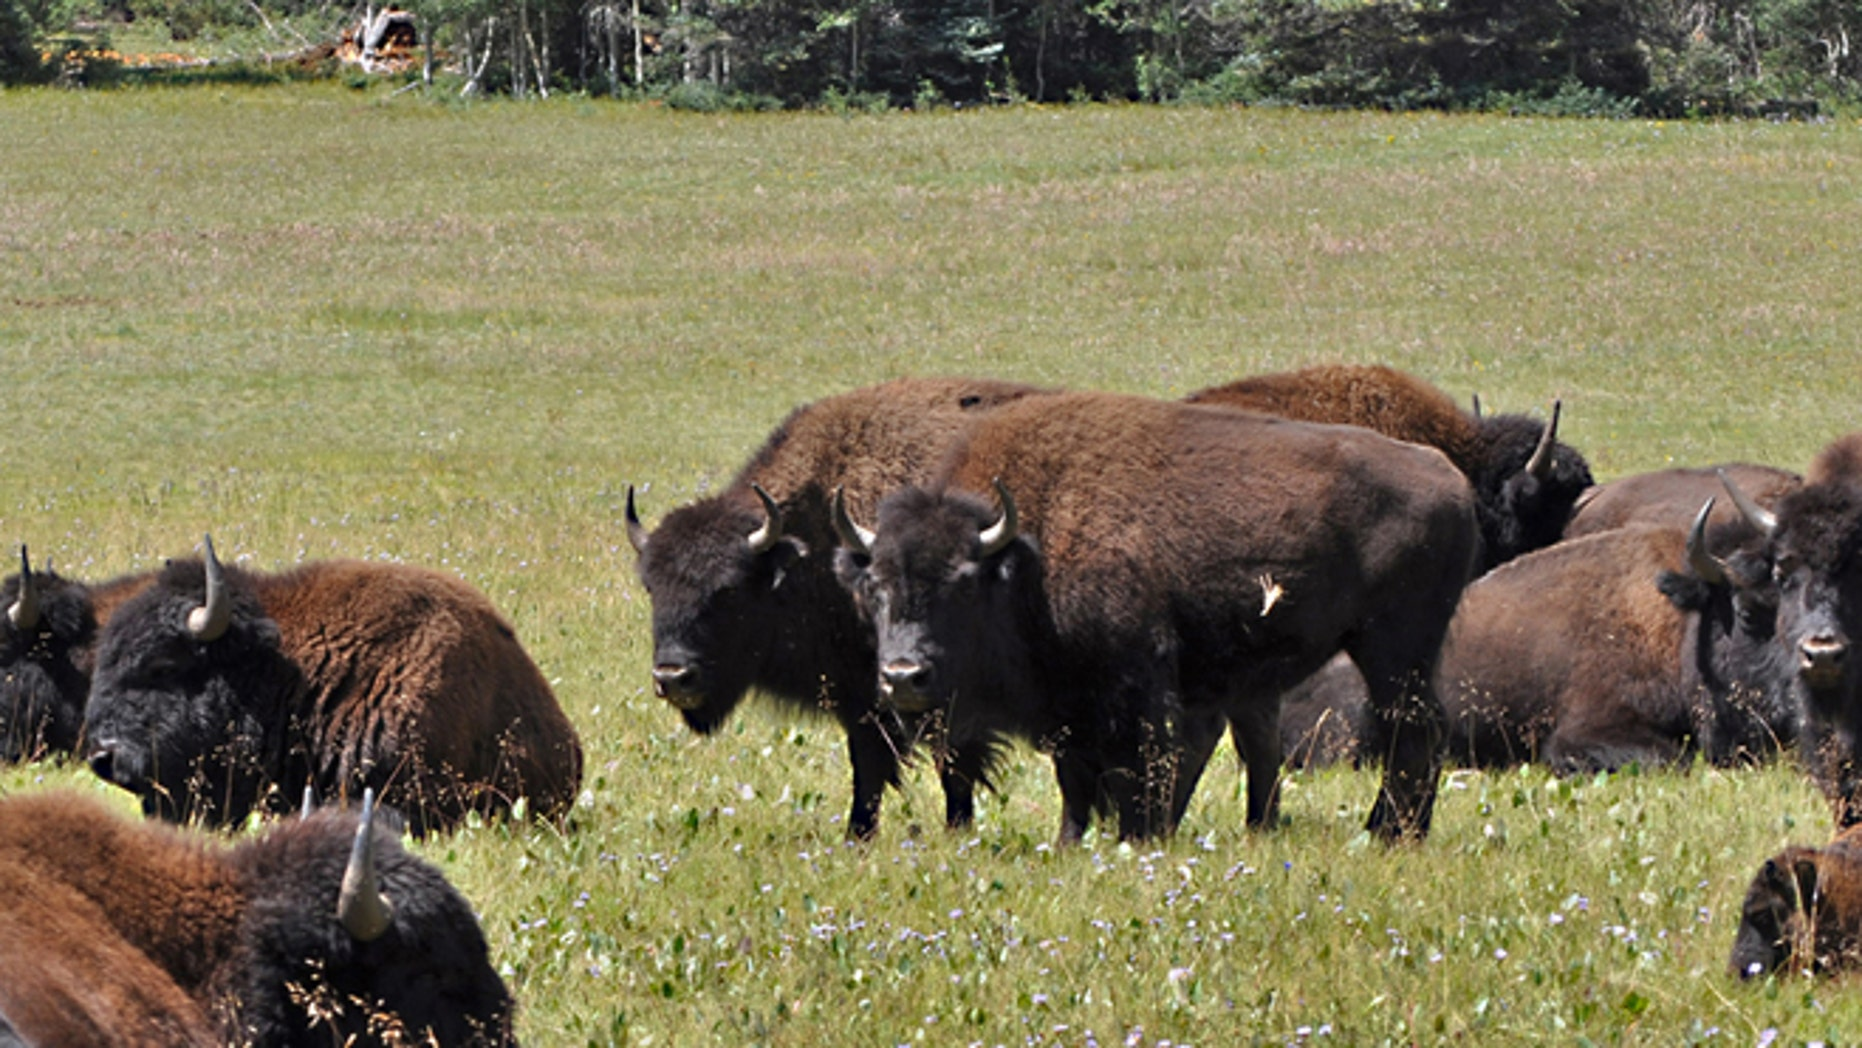 This undated photo provided by Kaibab National Forest shows bison roaming along the House Rock Wildlife Area on the Kaibab National Forestss North Kaibab Ranger District in Arizona. (AP)